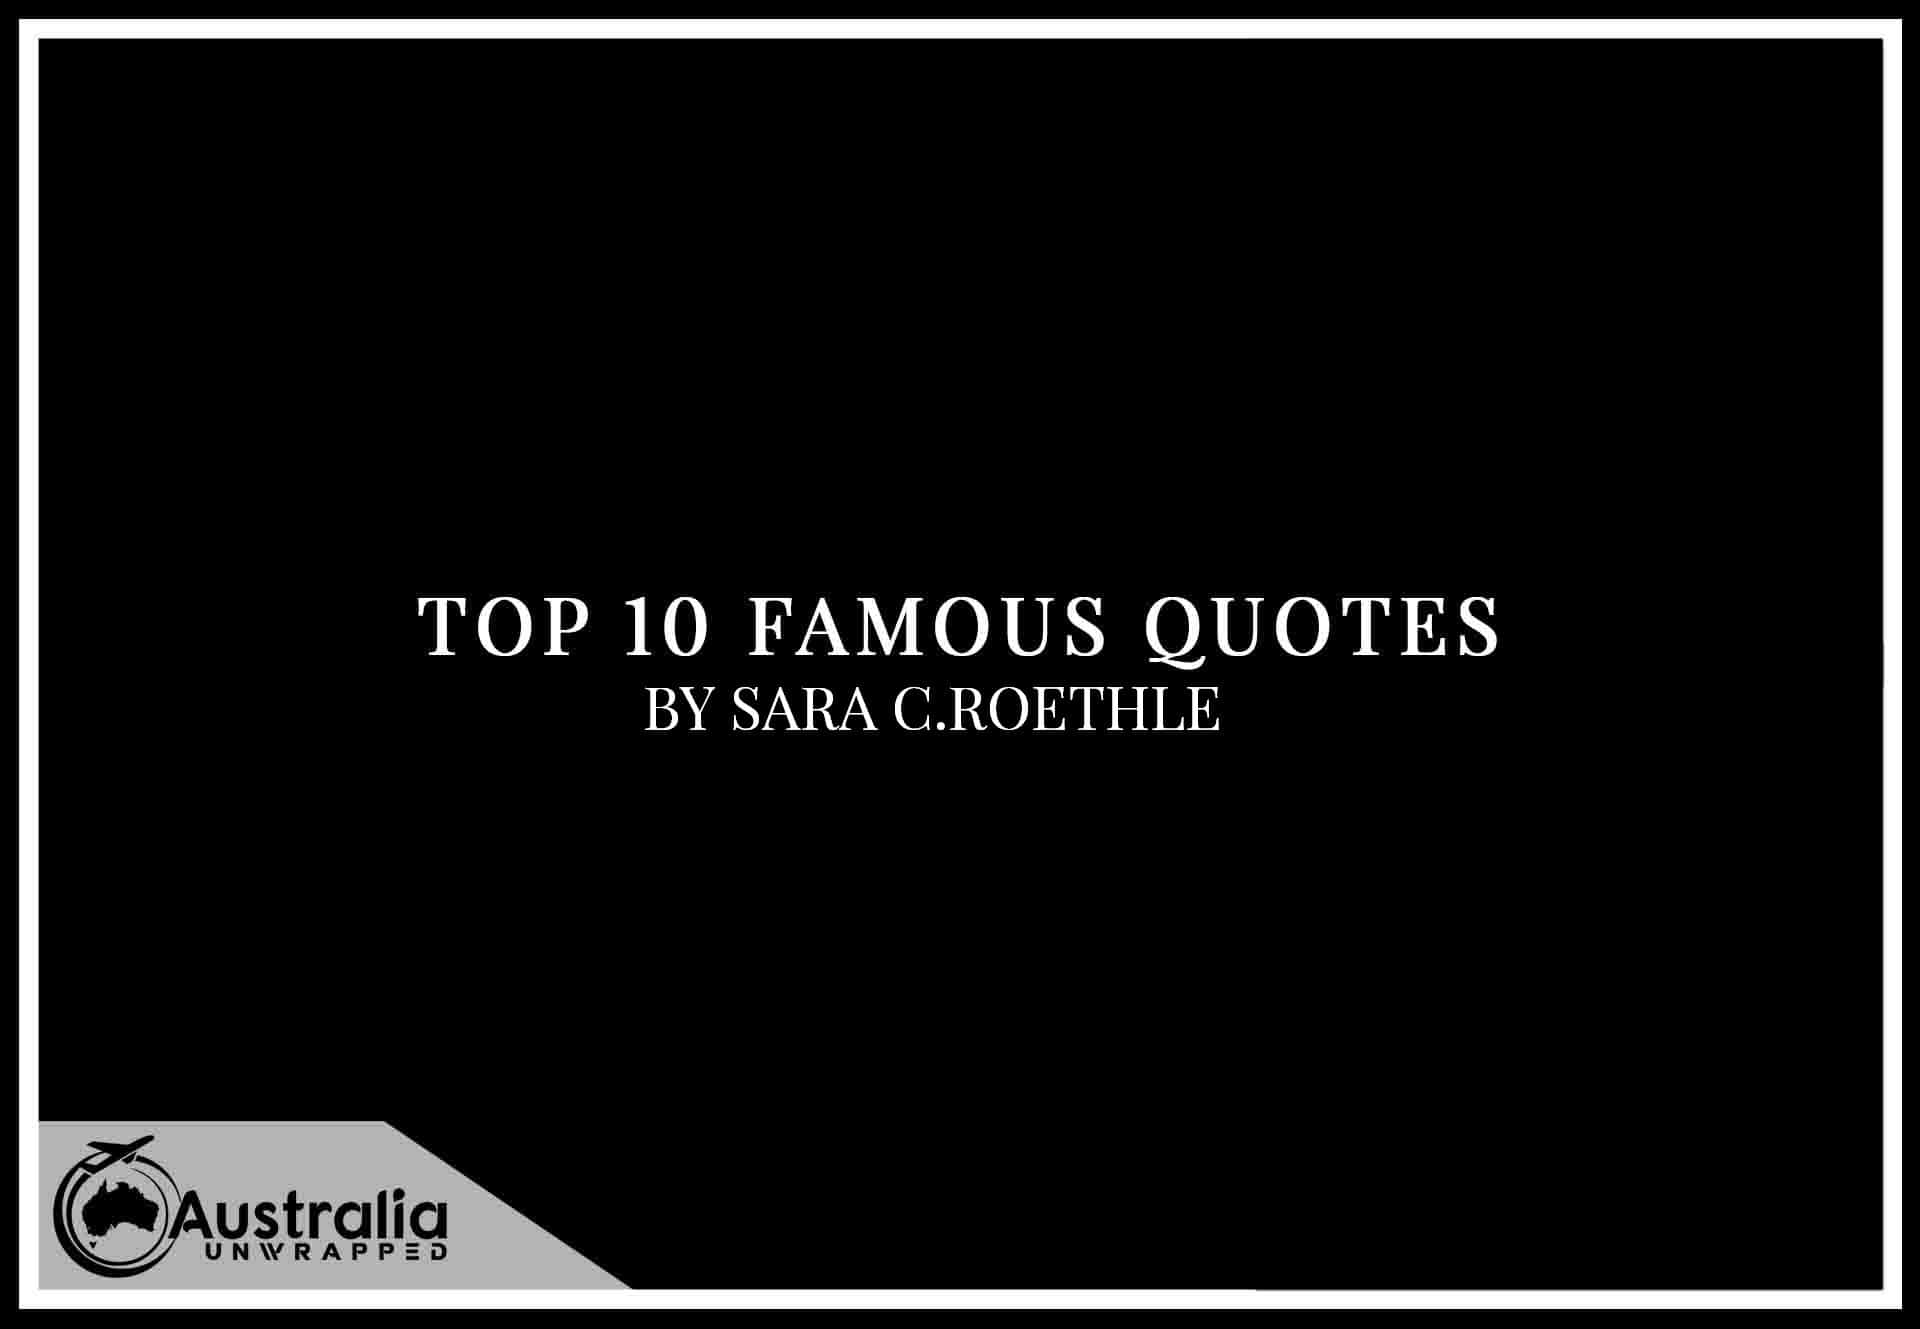 Top 10 Famous Quotes by Author Sara C. Roethle